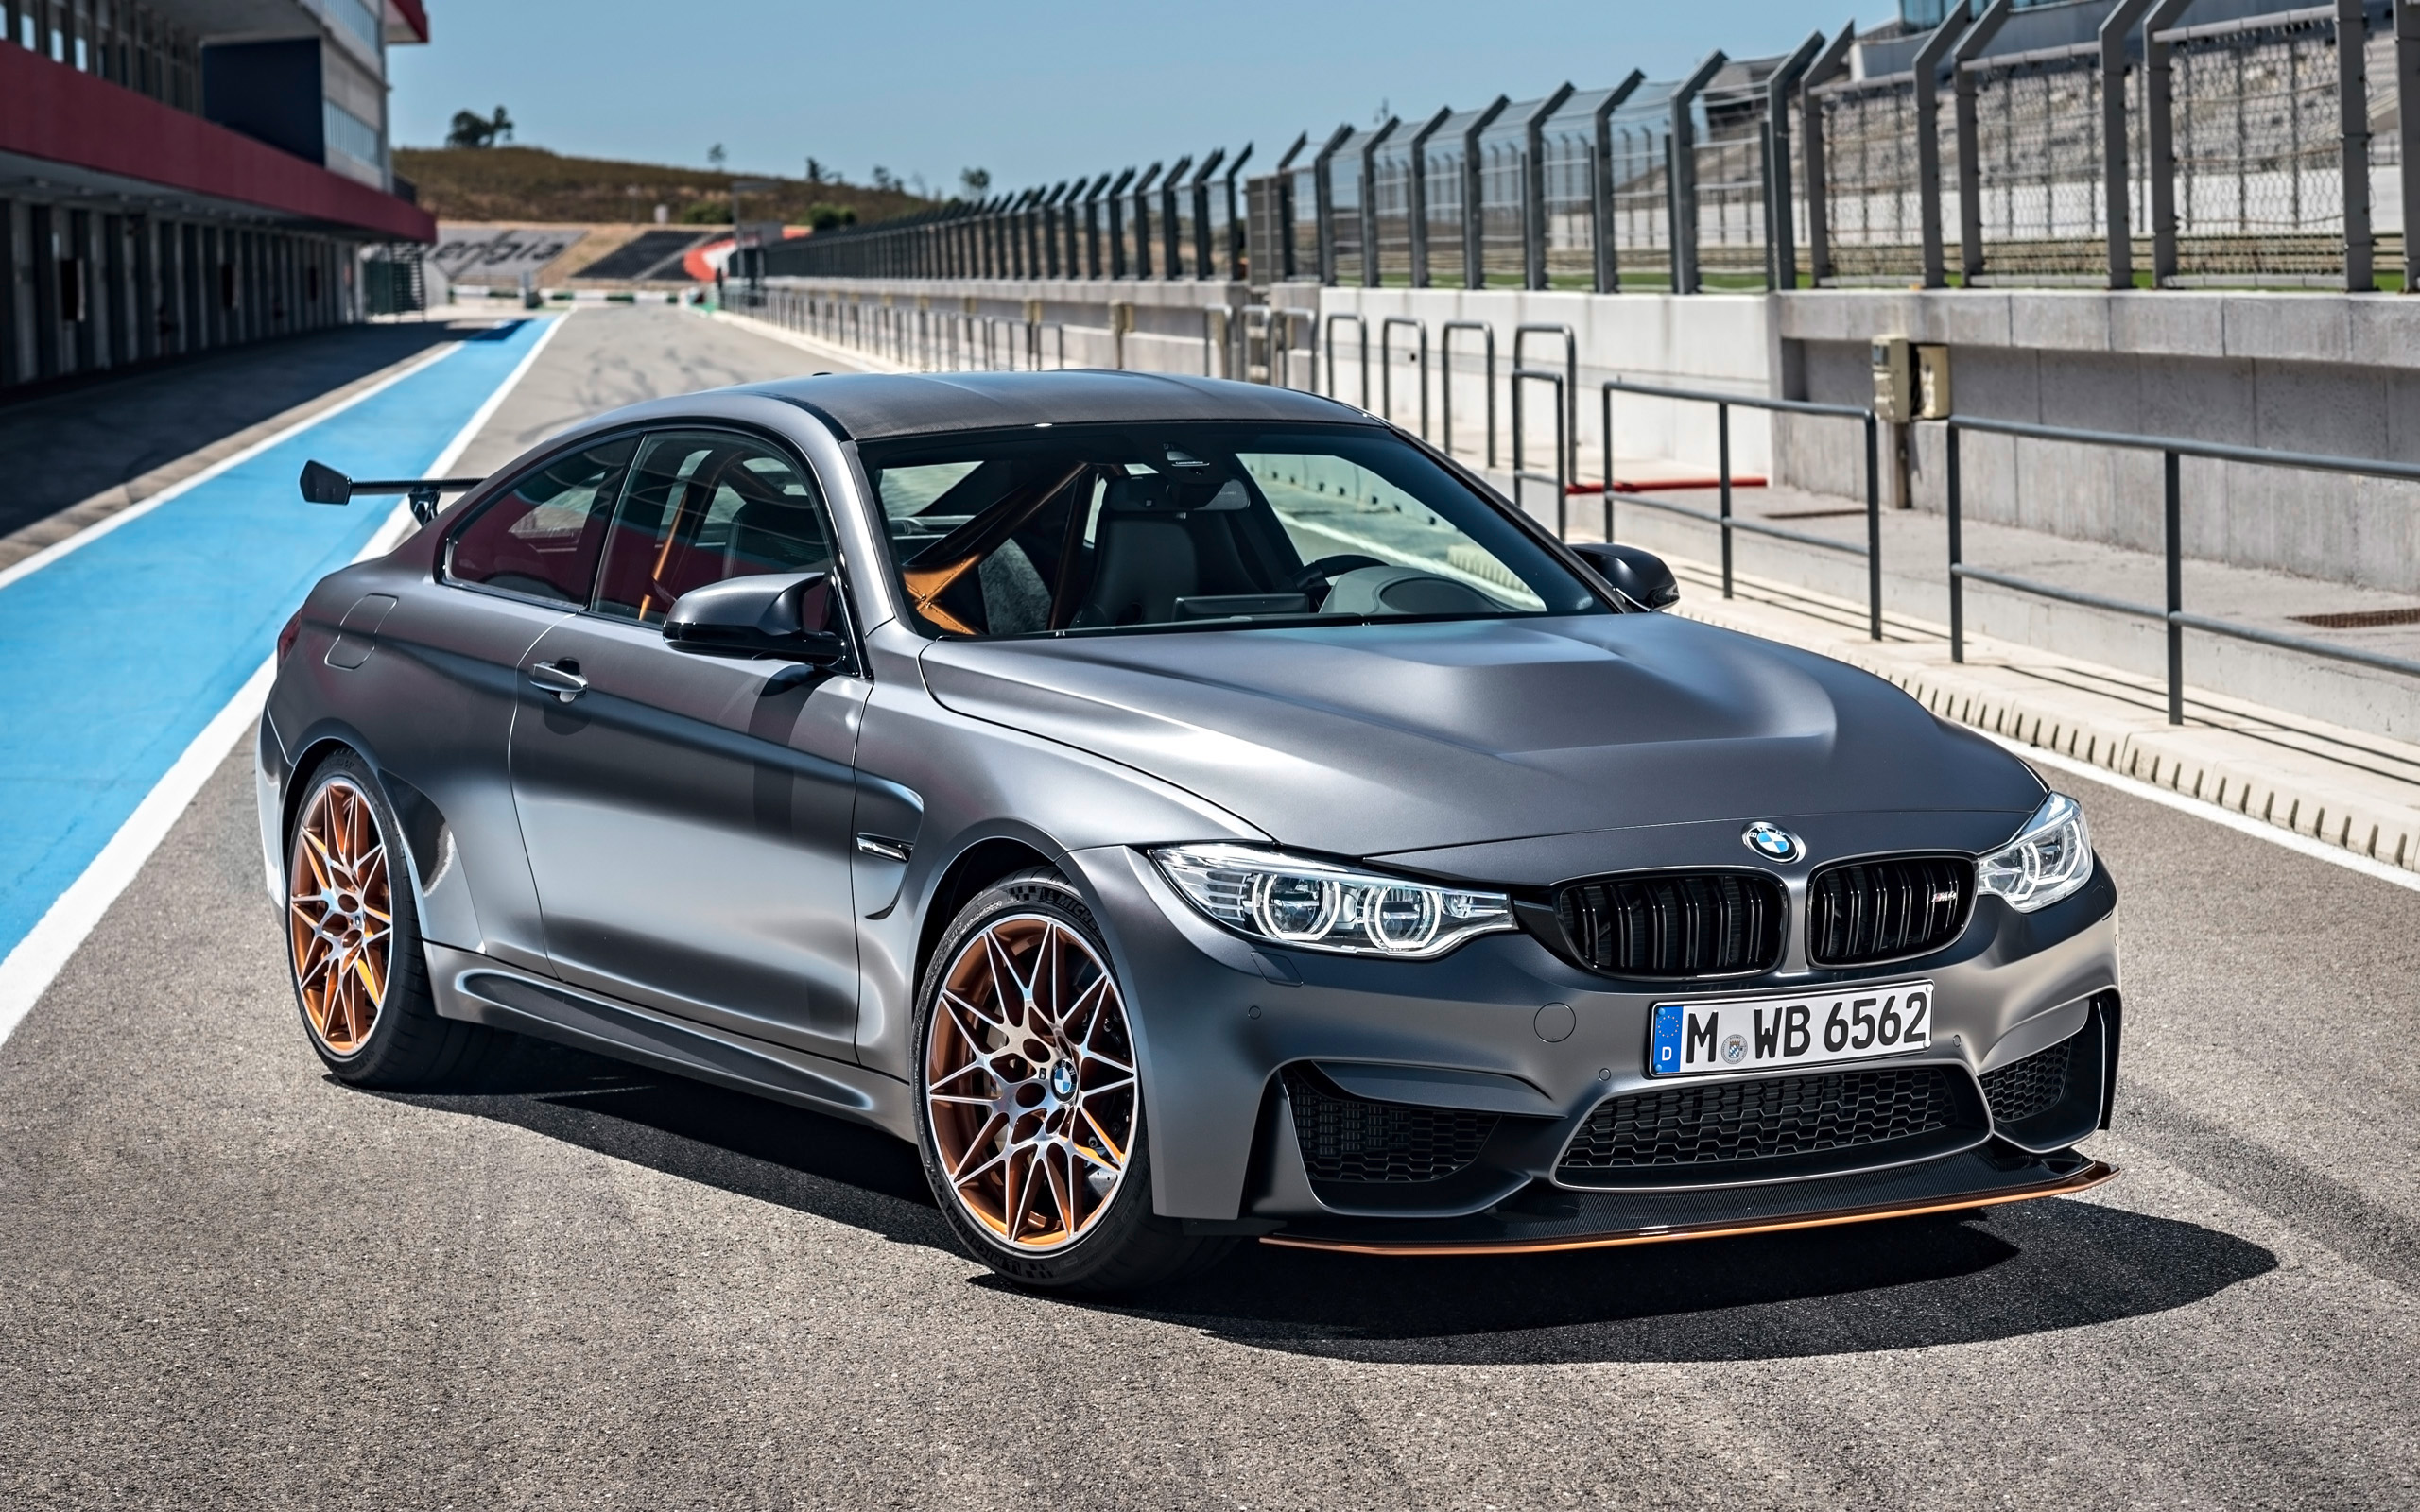 2016 Bmw M4 Gts Wallpaper Hd Car Wallpapers Id 5831